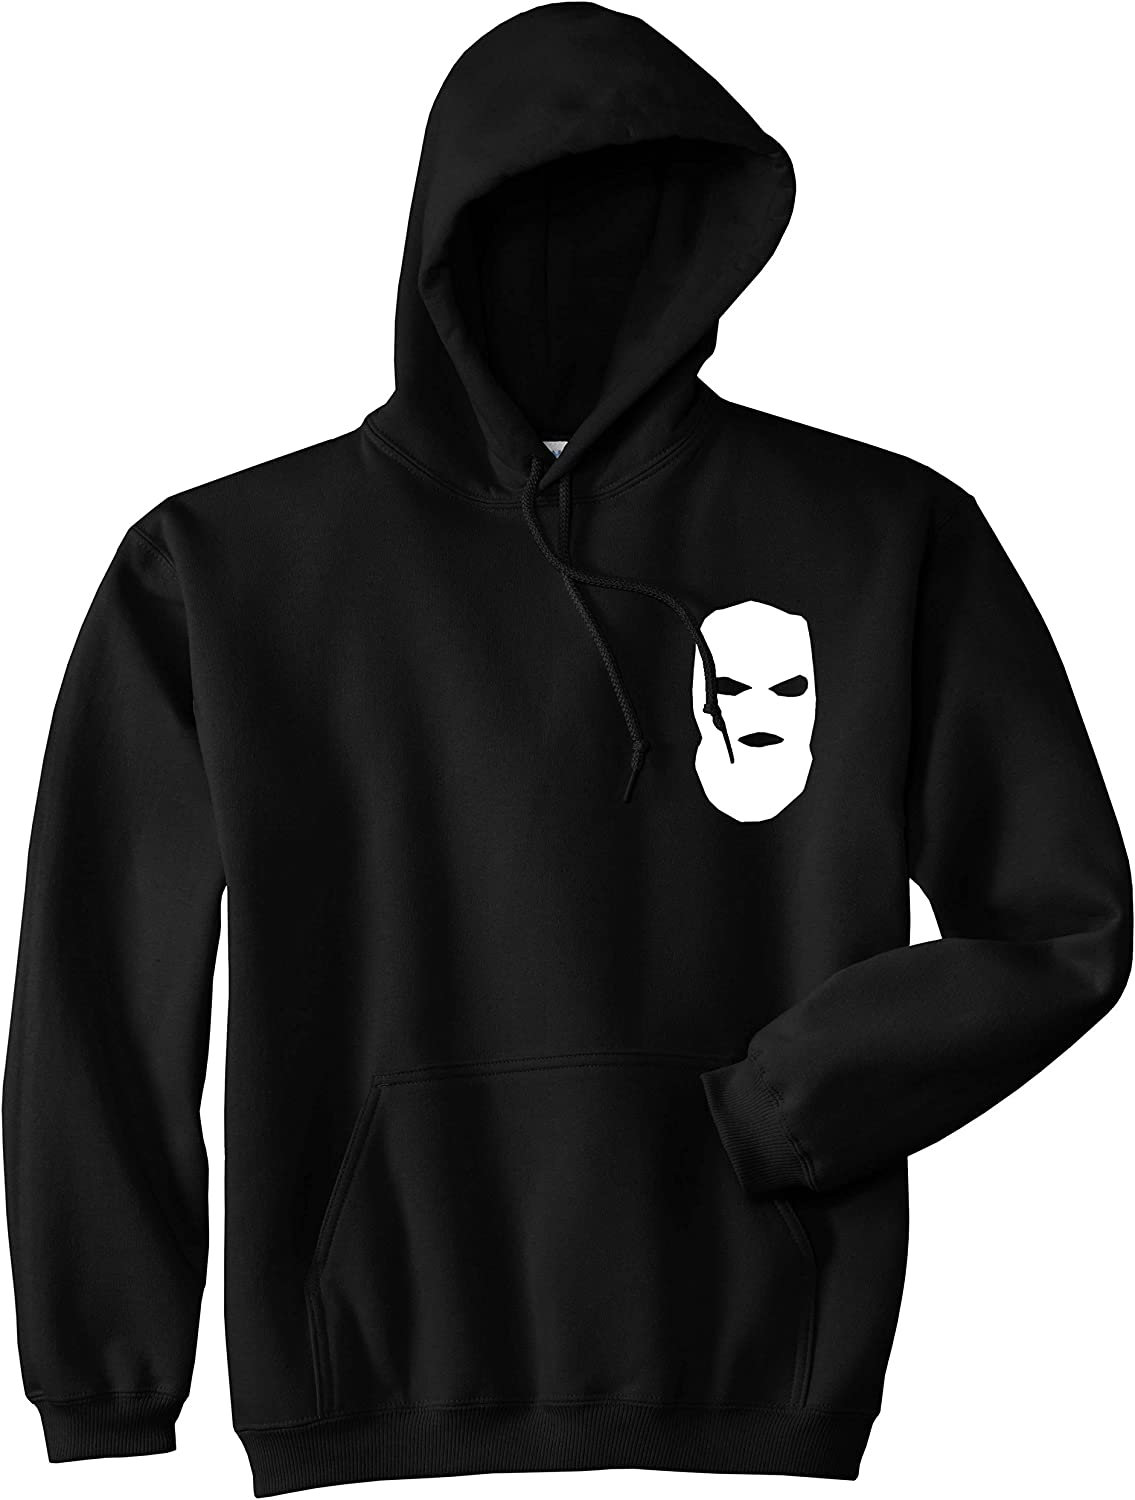 Kings Of NY Ski Mask Chest Logo Purchase Hooded Boston Mall Hood York Pullover Sw New